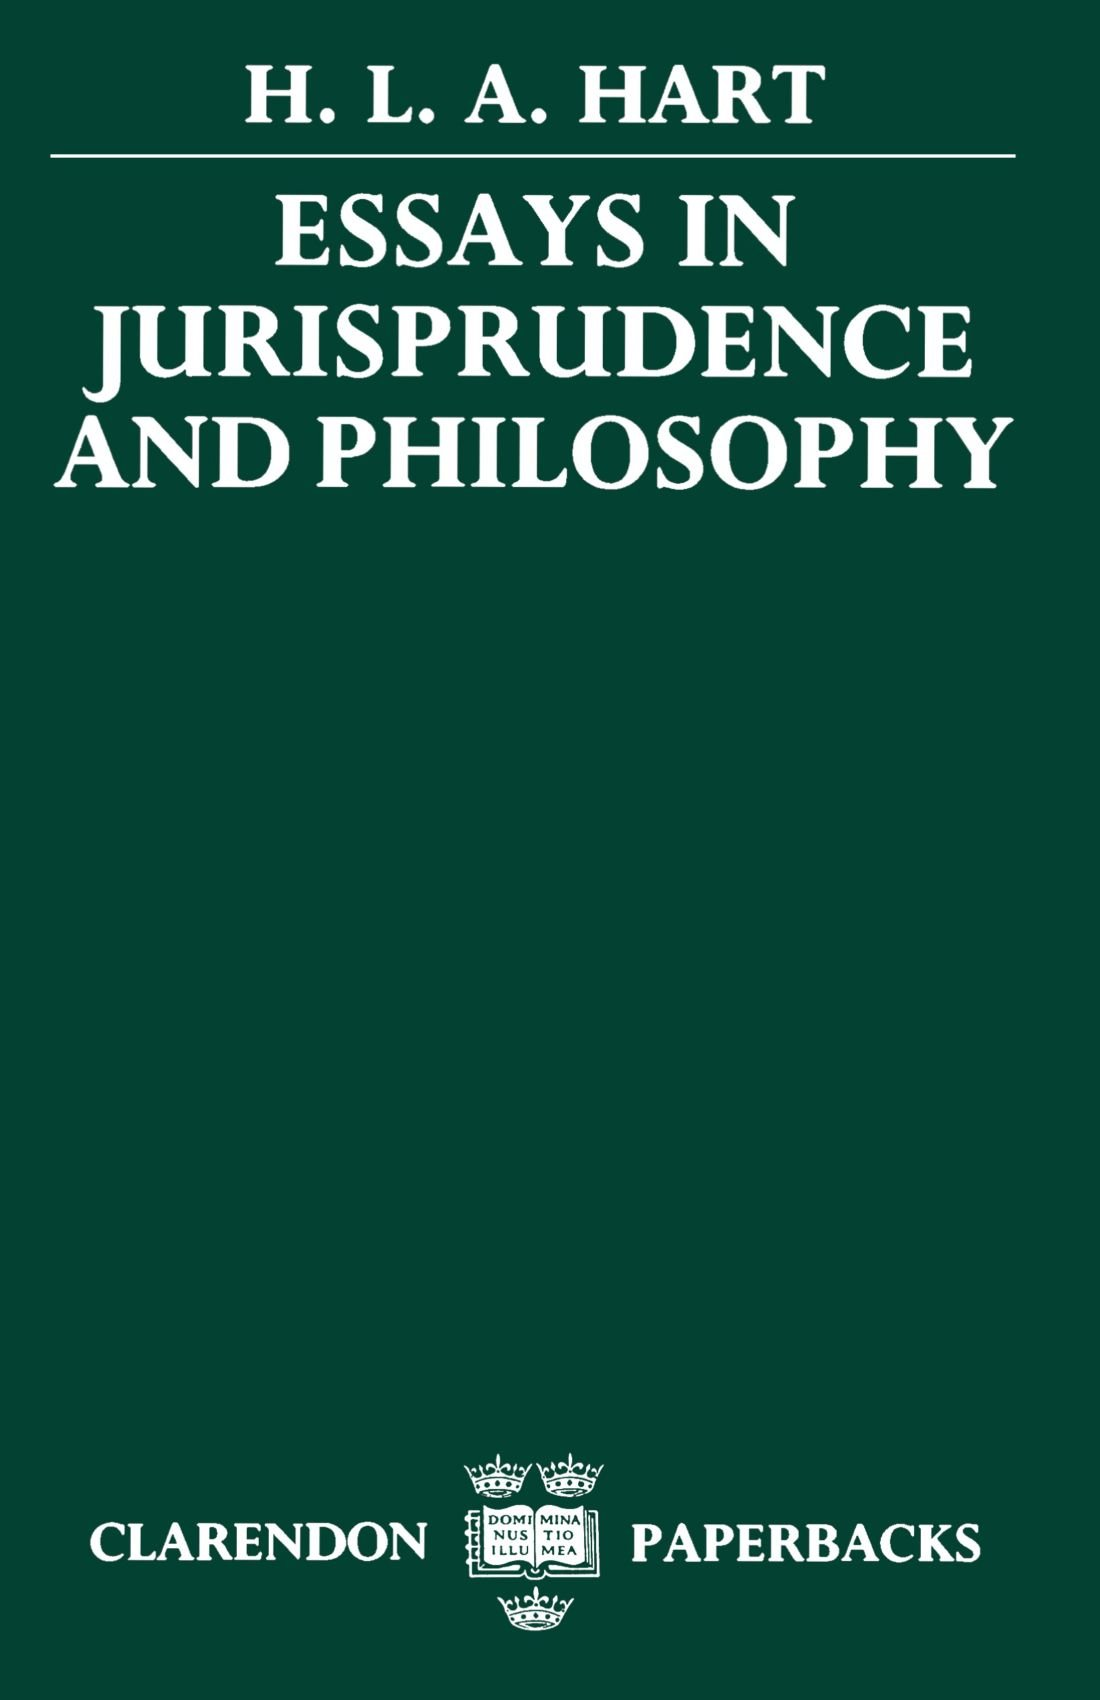 essays in jurisprudence and philosophy co uk h l a essays in jurisprudence and philosophy co uk h l a hart 9780198253884 books